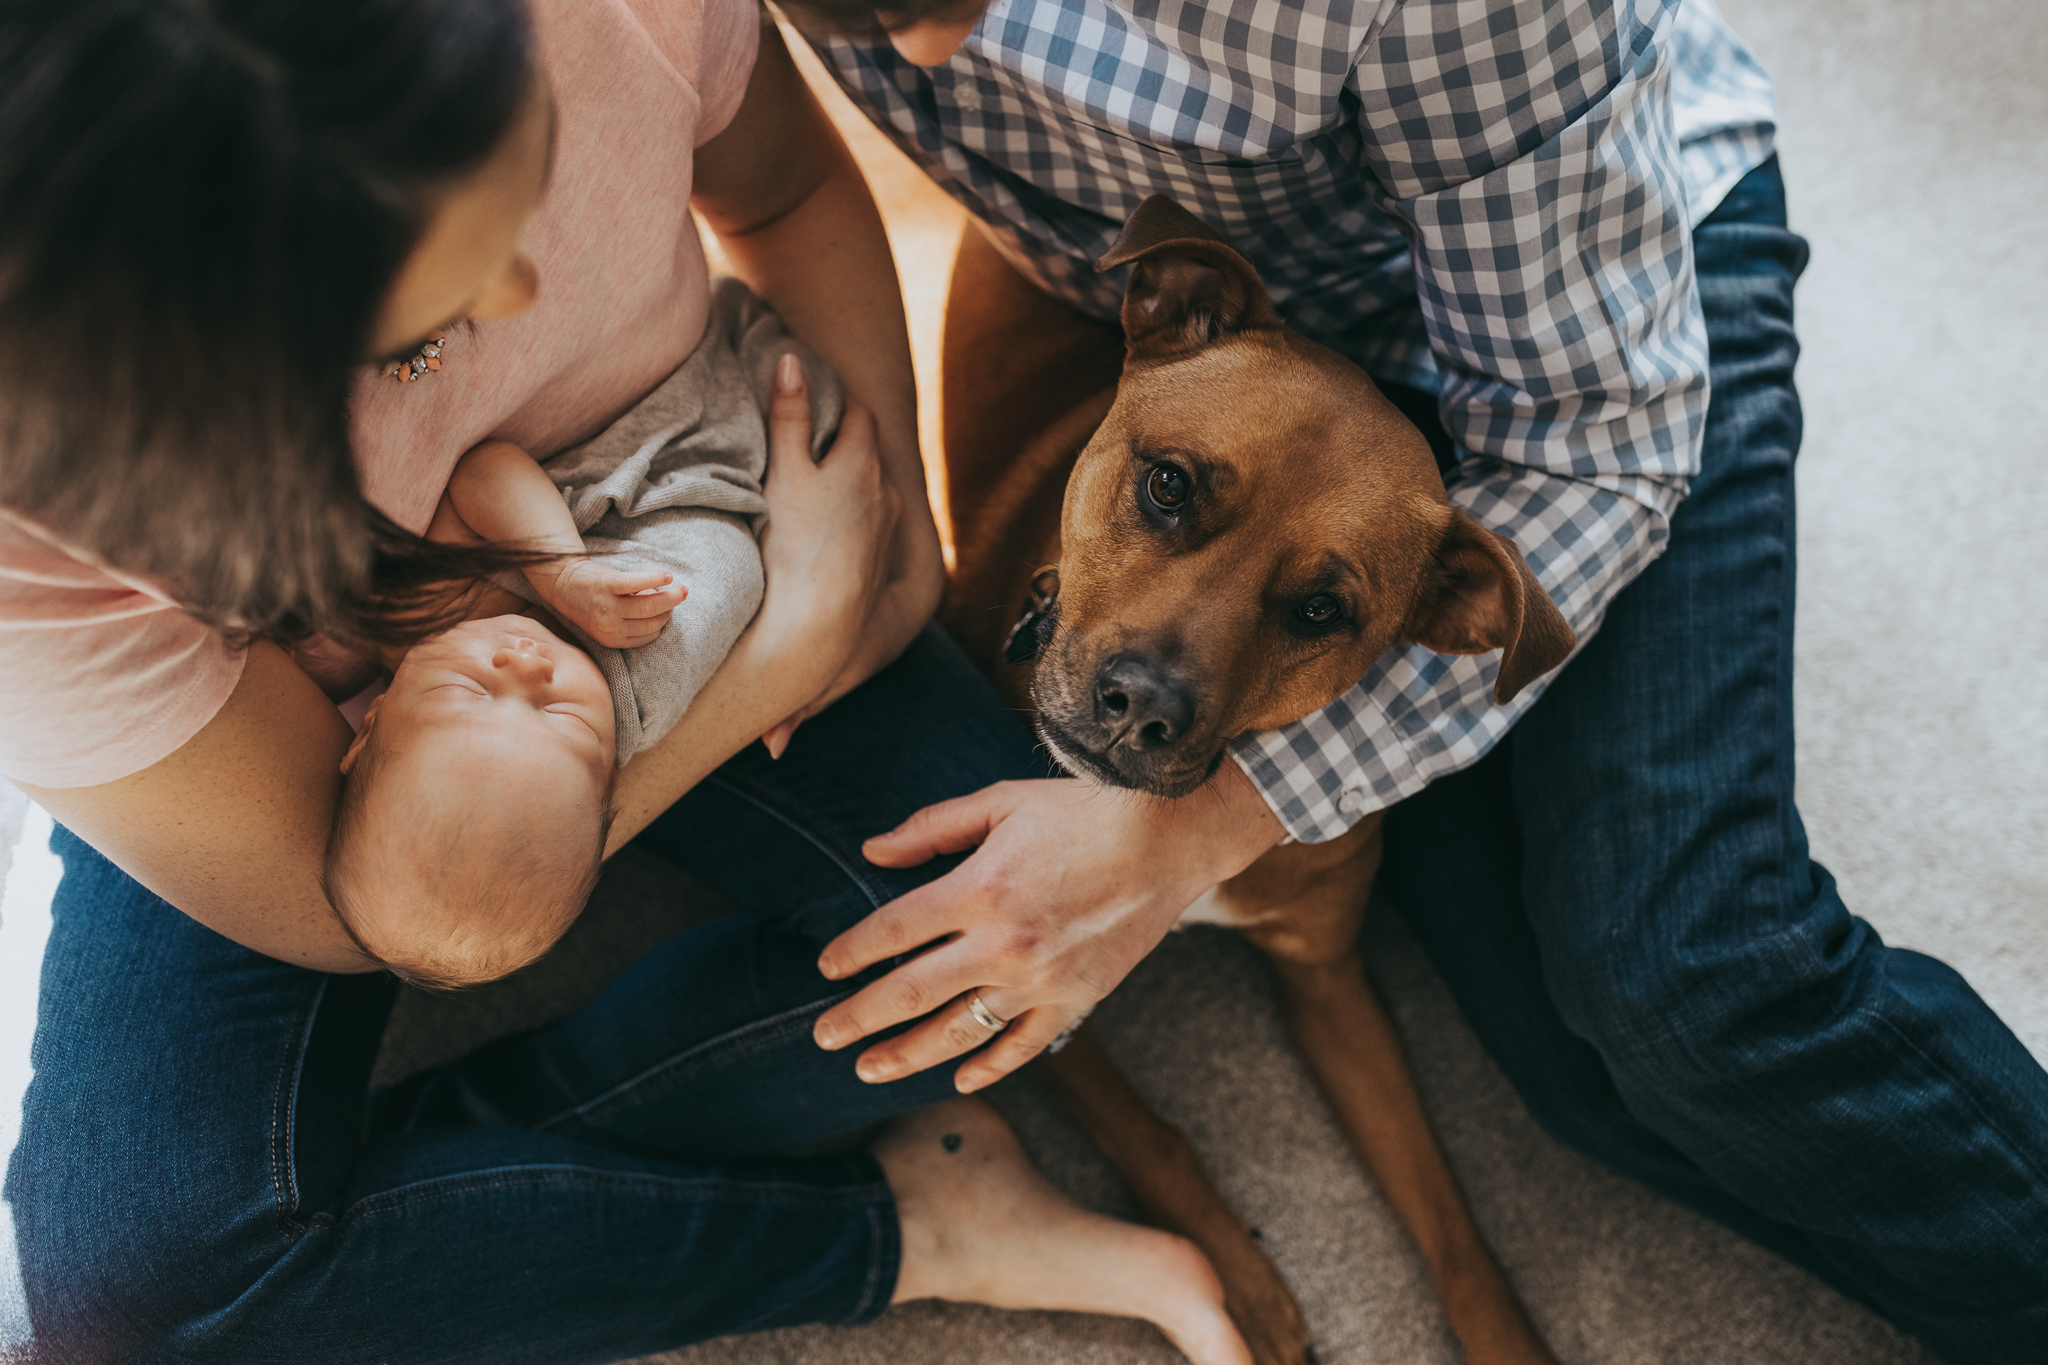 family dog with newborn baby and parents - AMG Photography